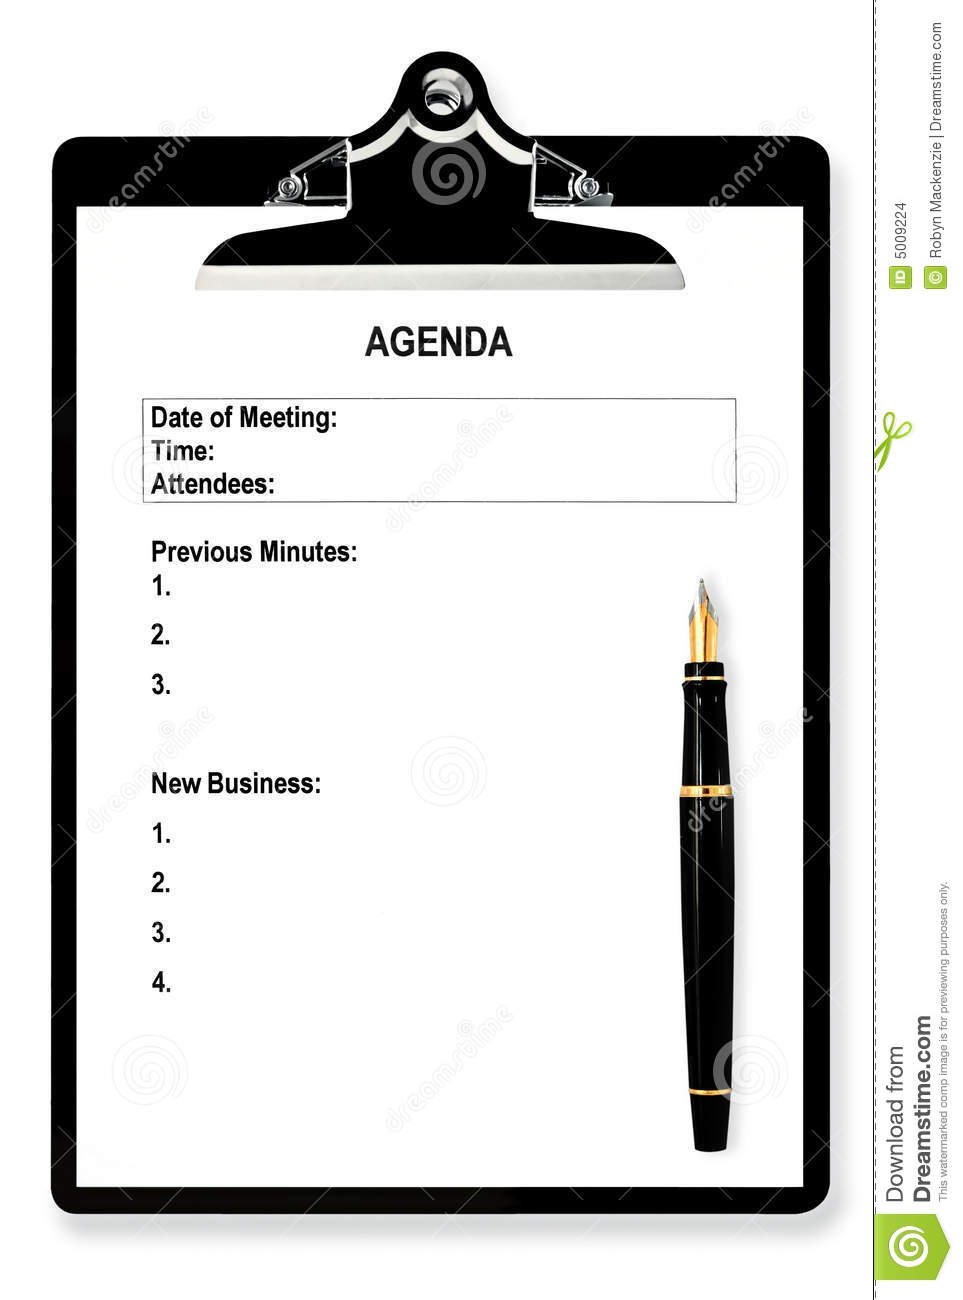 first board meeting agenda template - meeting agenda stock photo image of writing stationery